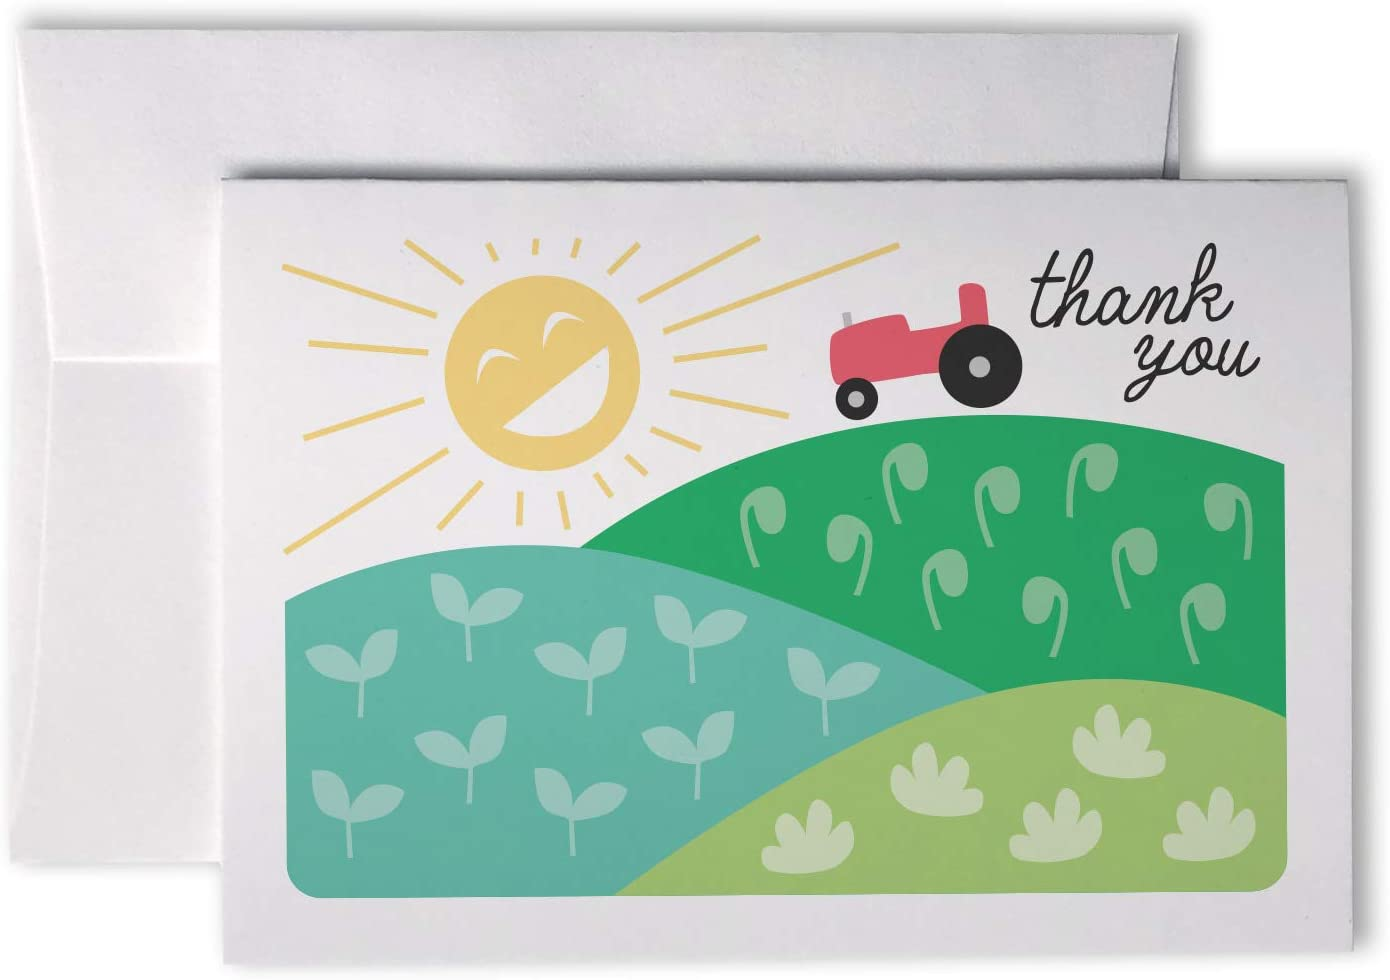 Down on The Farm Thank You Cards - 24 Cards with Envelopes